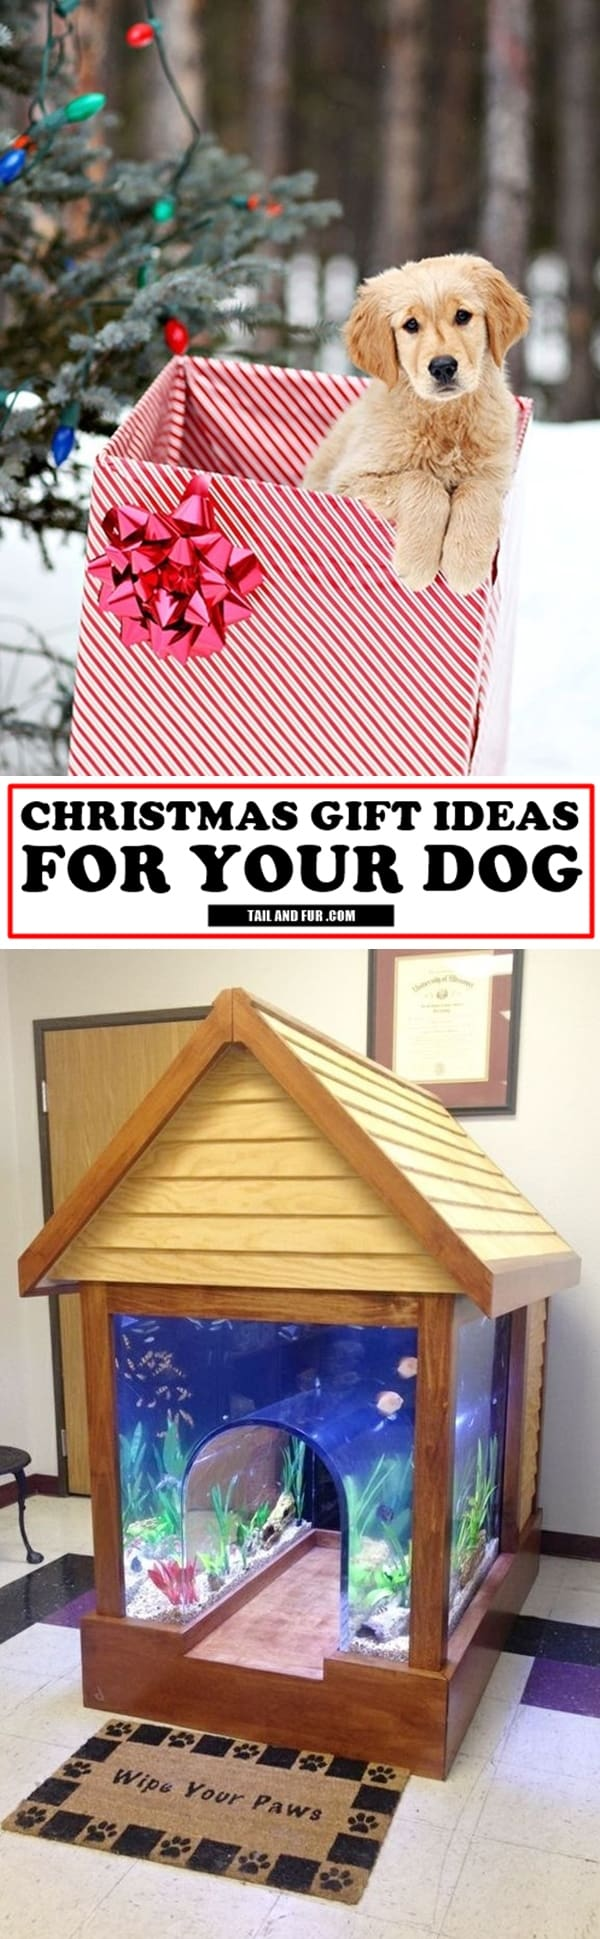 Christmas-Gift-Ideas-For-Your-Dog